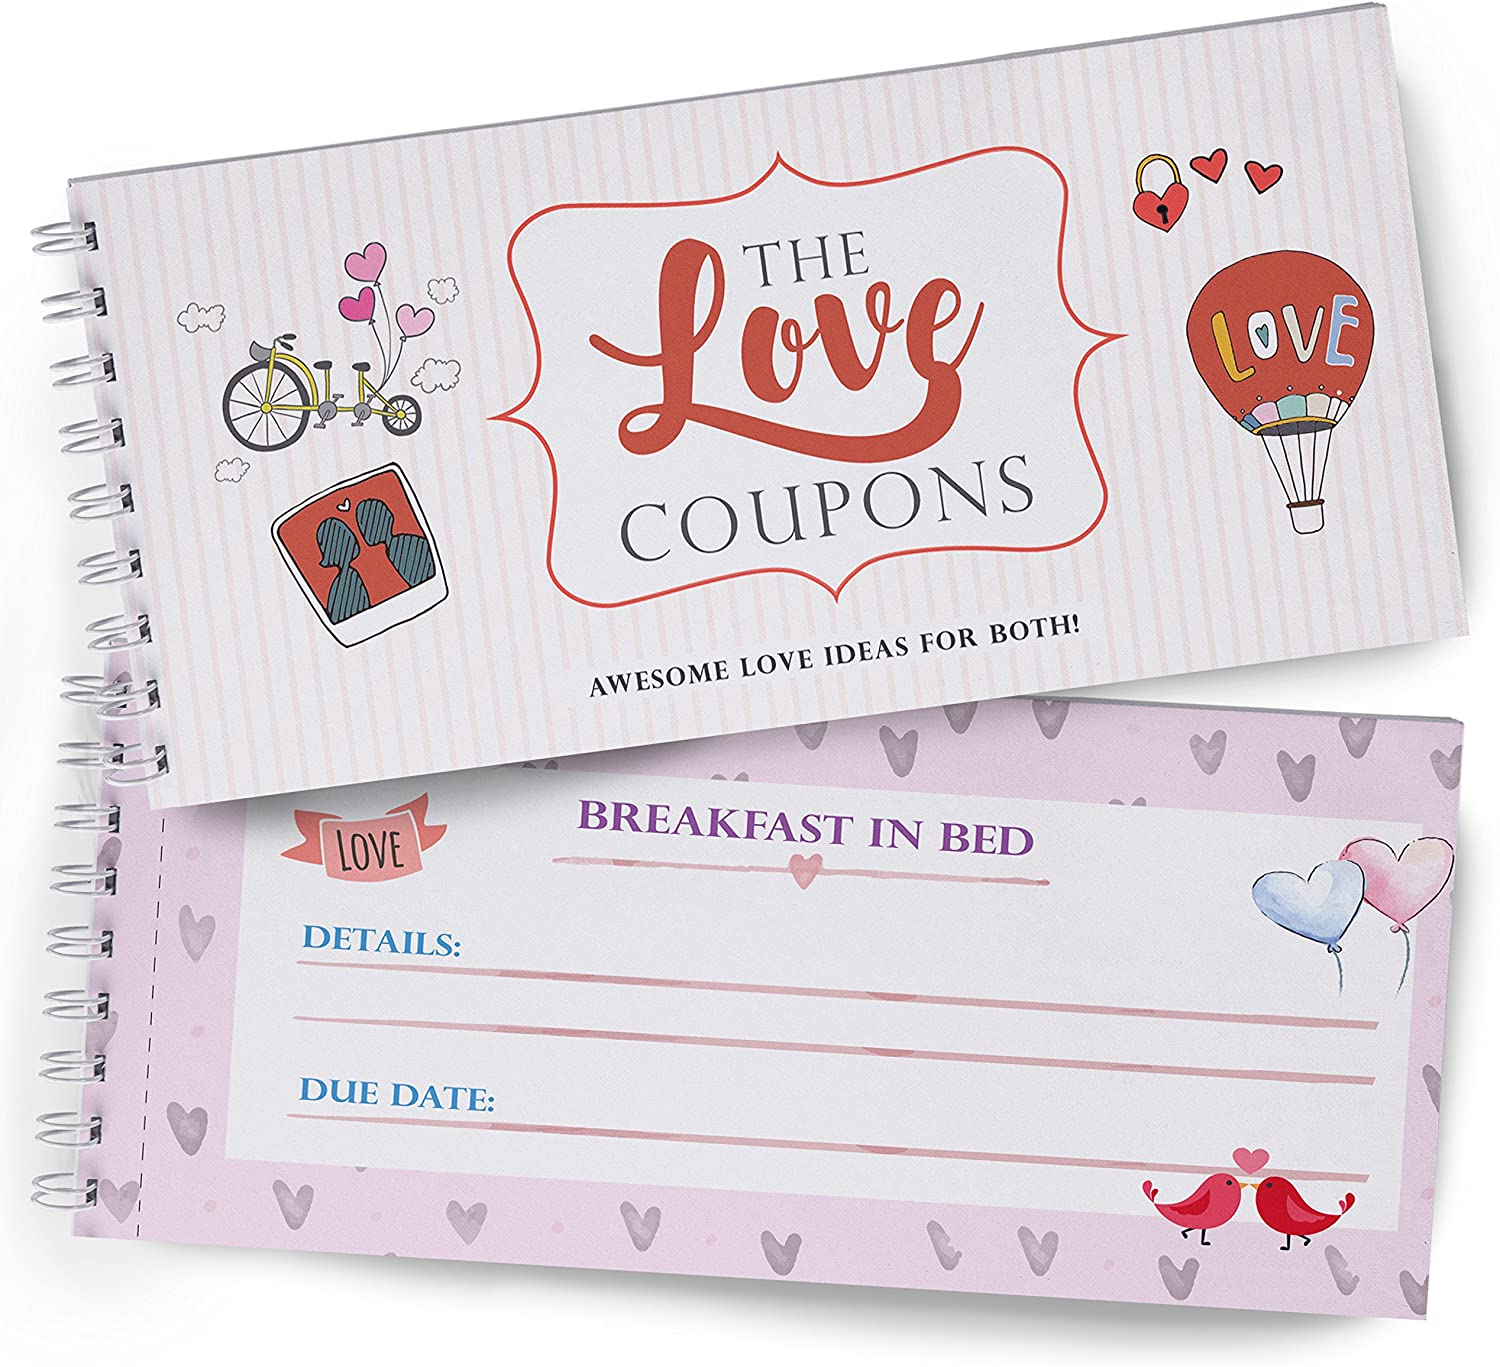 Amazon Com Love Coupons For Lovers Great Gift Of Love Wife Coupon Book For Couples And Girlfriend Perfect For Couples That Love Adventure Great Anniversary Gift To Fill In With Your Words Real